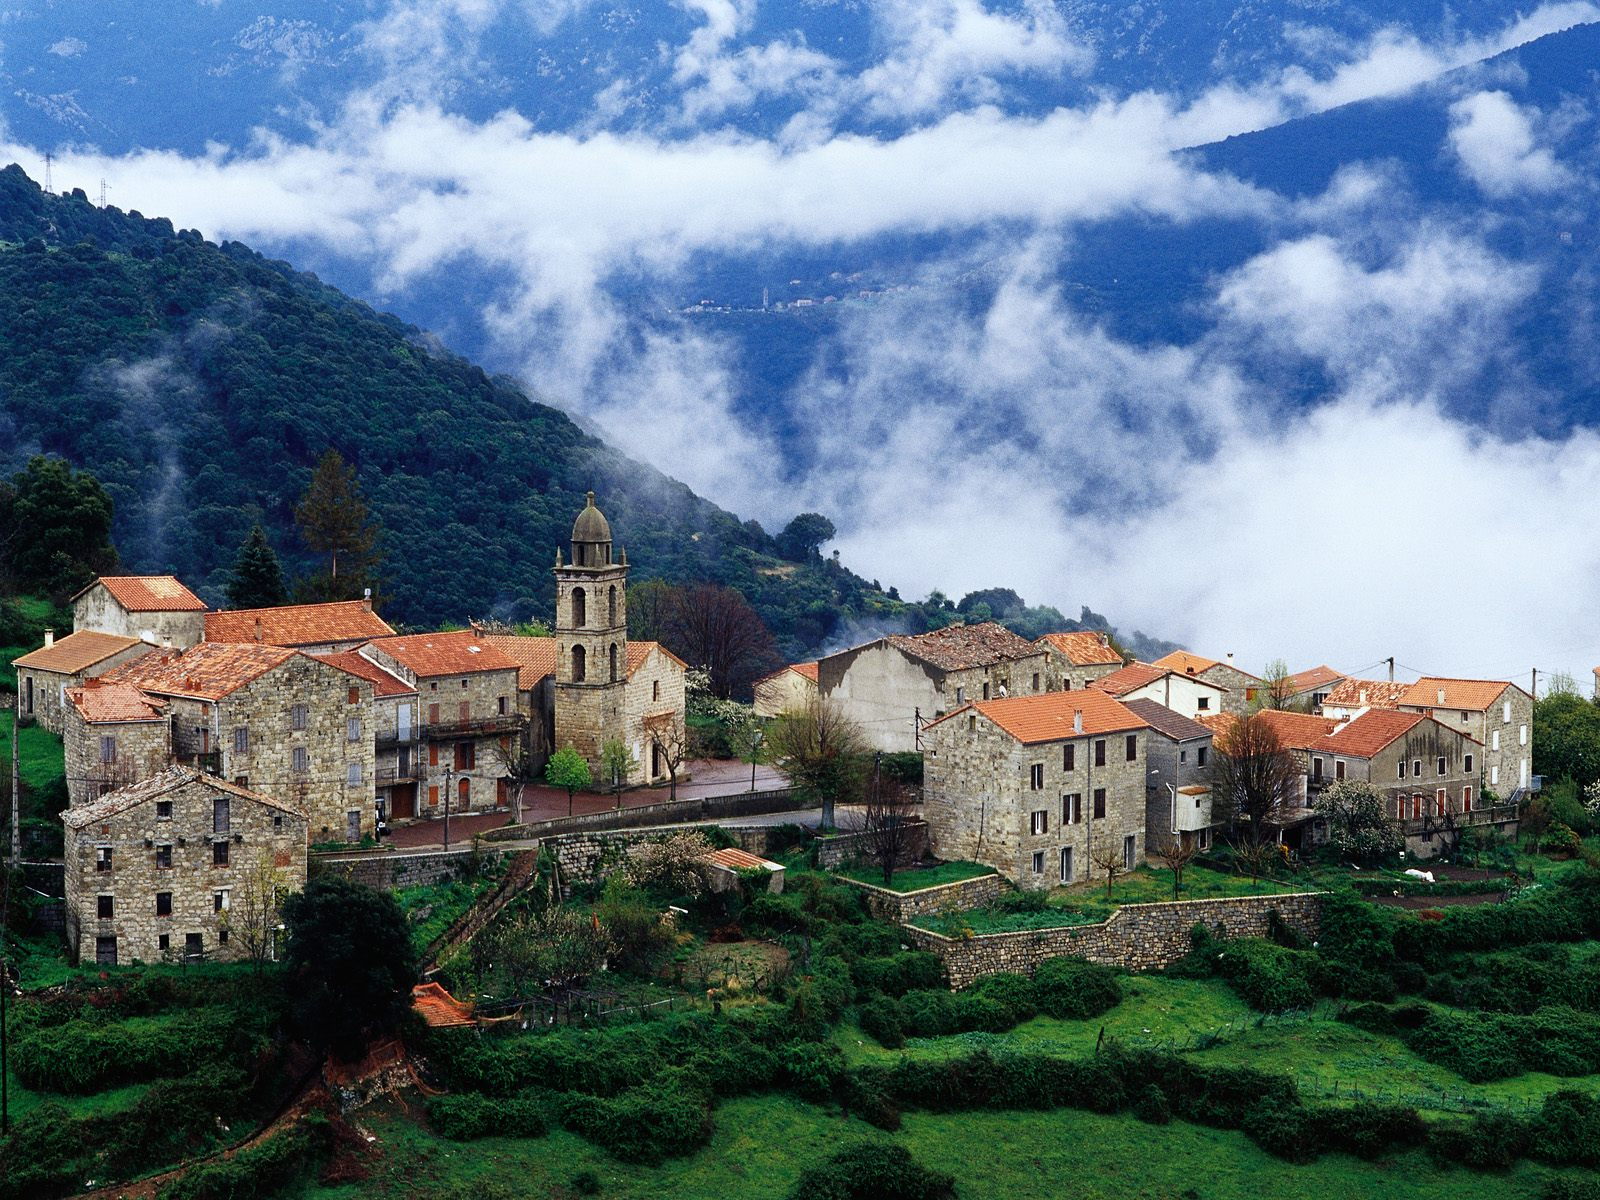 Village Corsica France Wallpapers HD Wallpapers 1600x1200